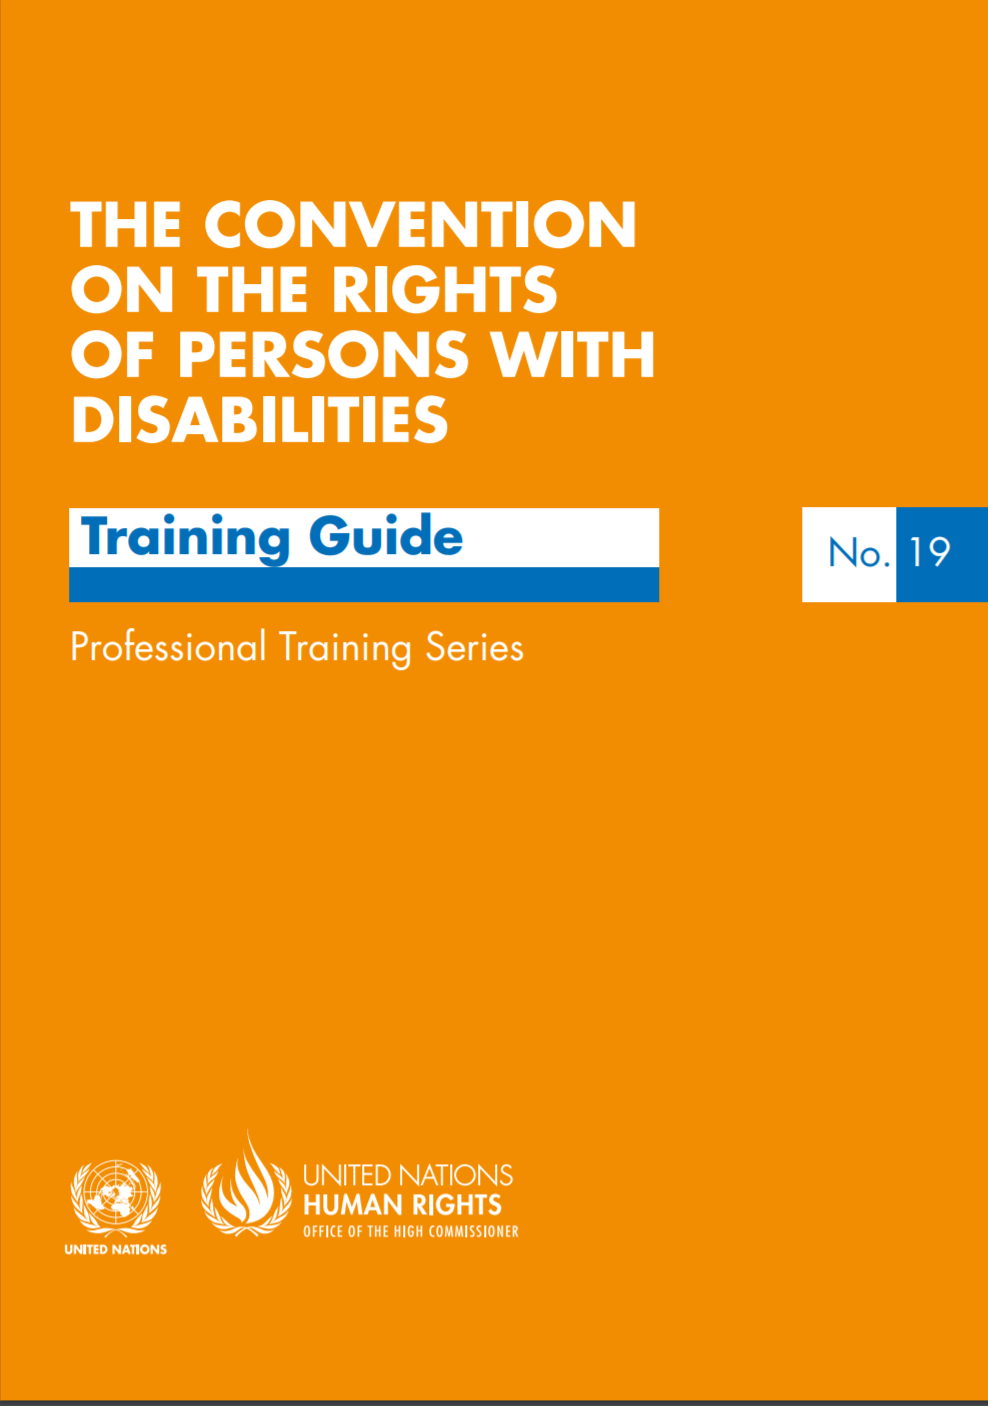 """Cover for the manual entitled """"The Convention on the Rights of Persons with Disabilities: Training Guide"""", Number 19 in the Professional Training Series. At the bottom is the logo of the Office of the High Commissioner on Human Rights (OHCHR)."""